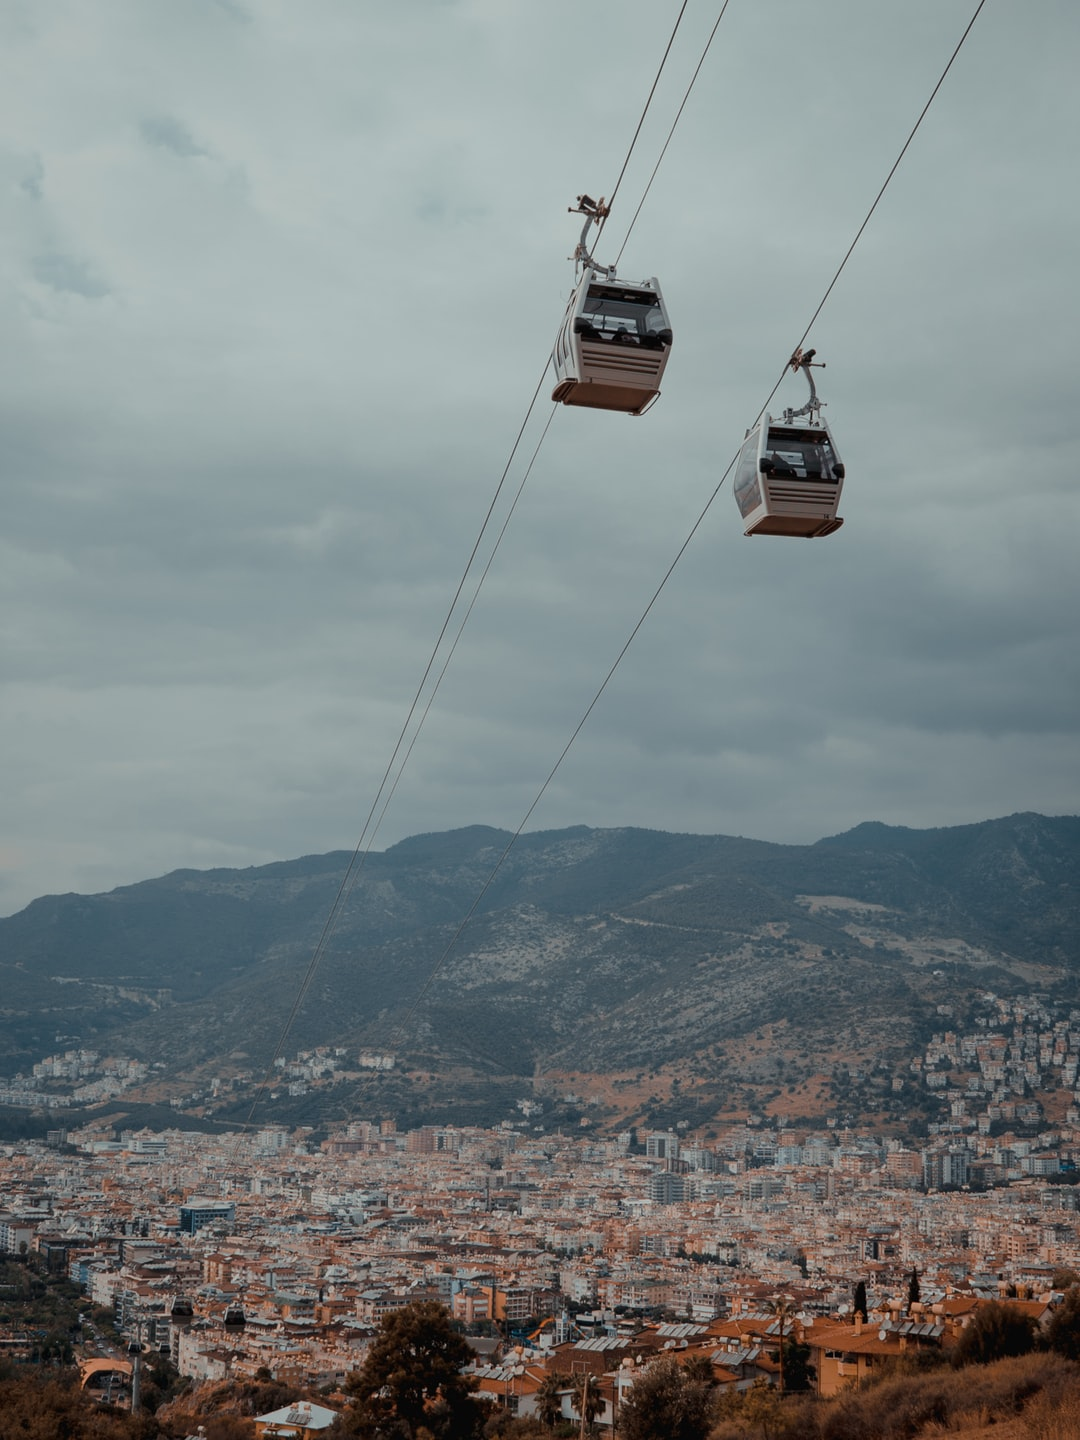 We were on a trip trough turkey. For our suprise, we celebrated the opening of the alanya gondolas. We took the chance to ride this things as the one of the first ones.